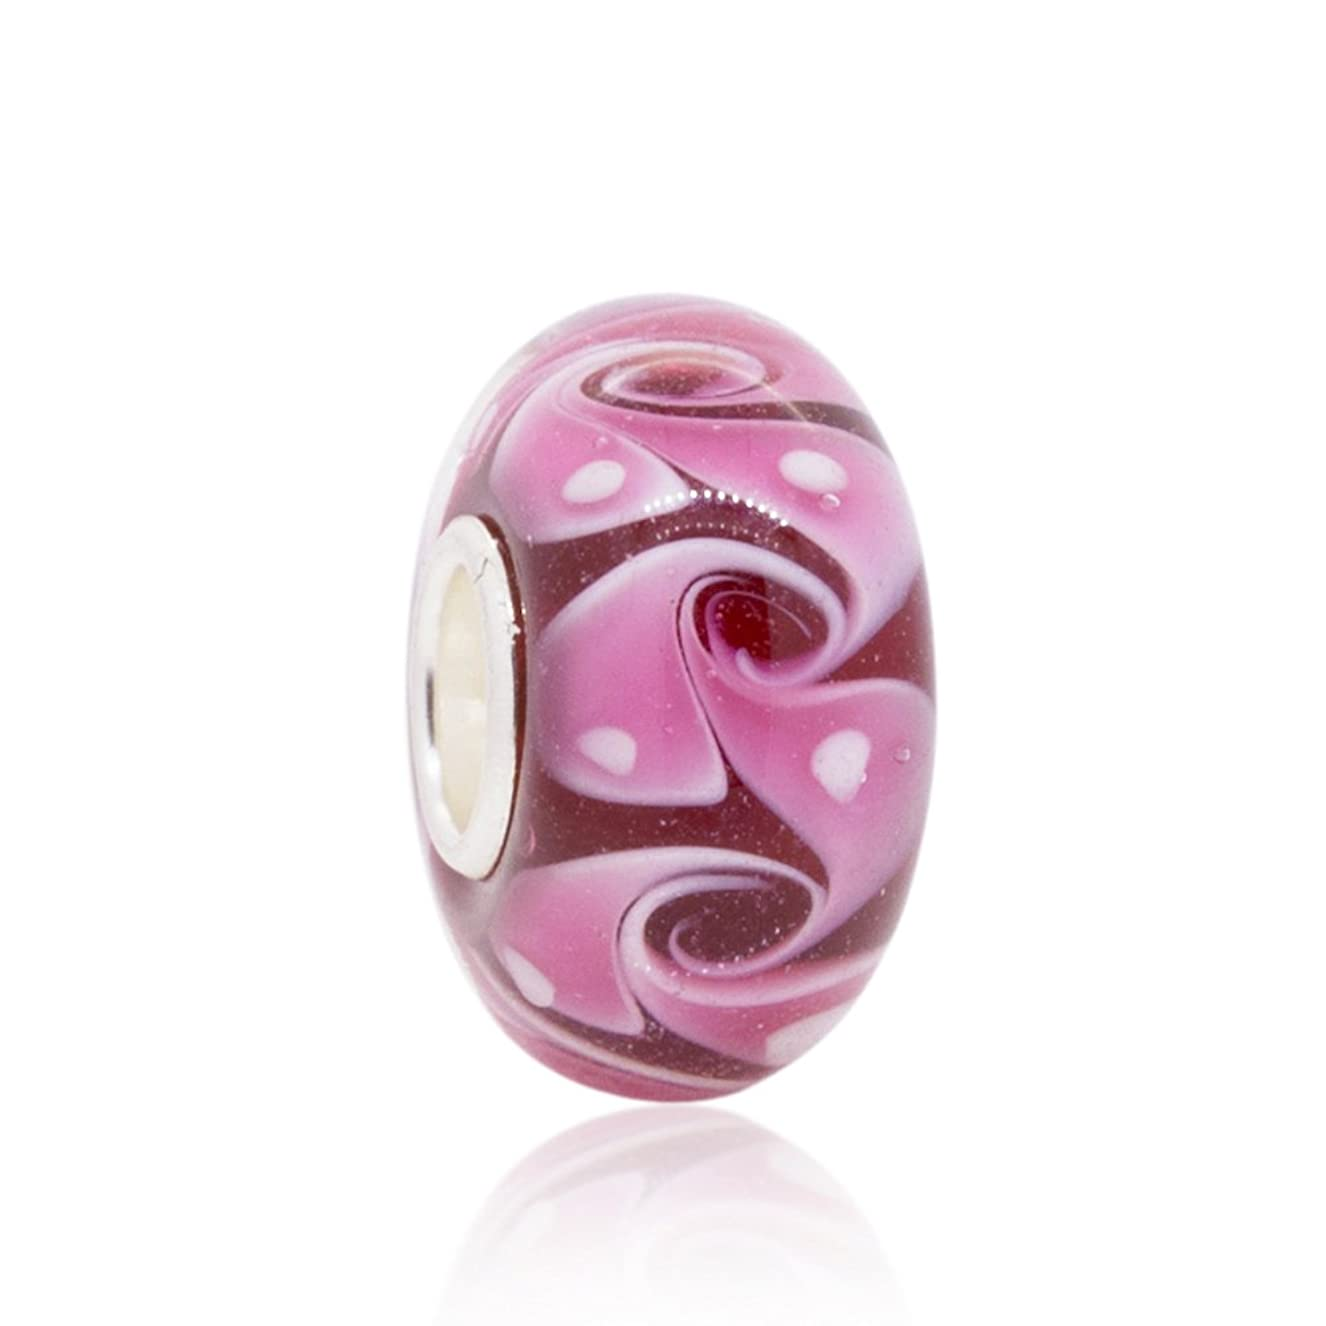 Swirl Pink Murano Glass Charm Bead - .925 Sterling Silver Core - Fits Pandora Charm Bracelet habmeacczs0987